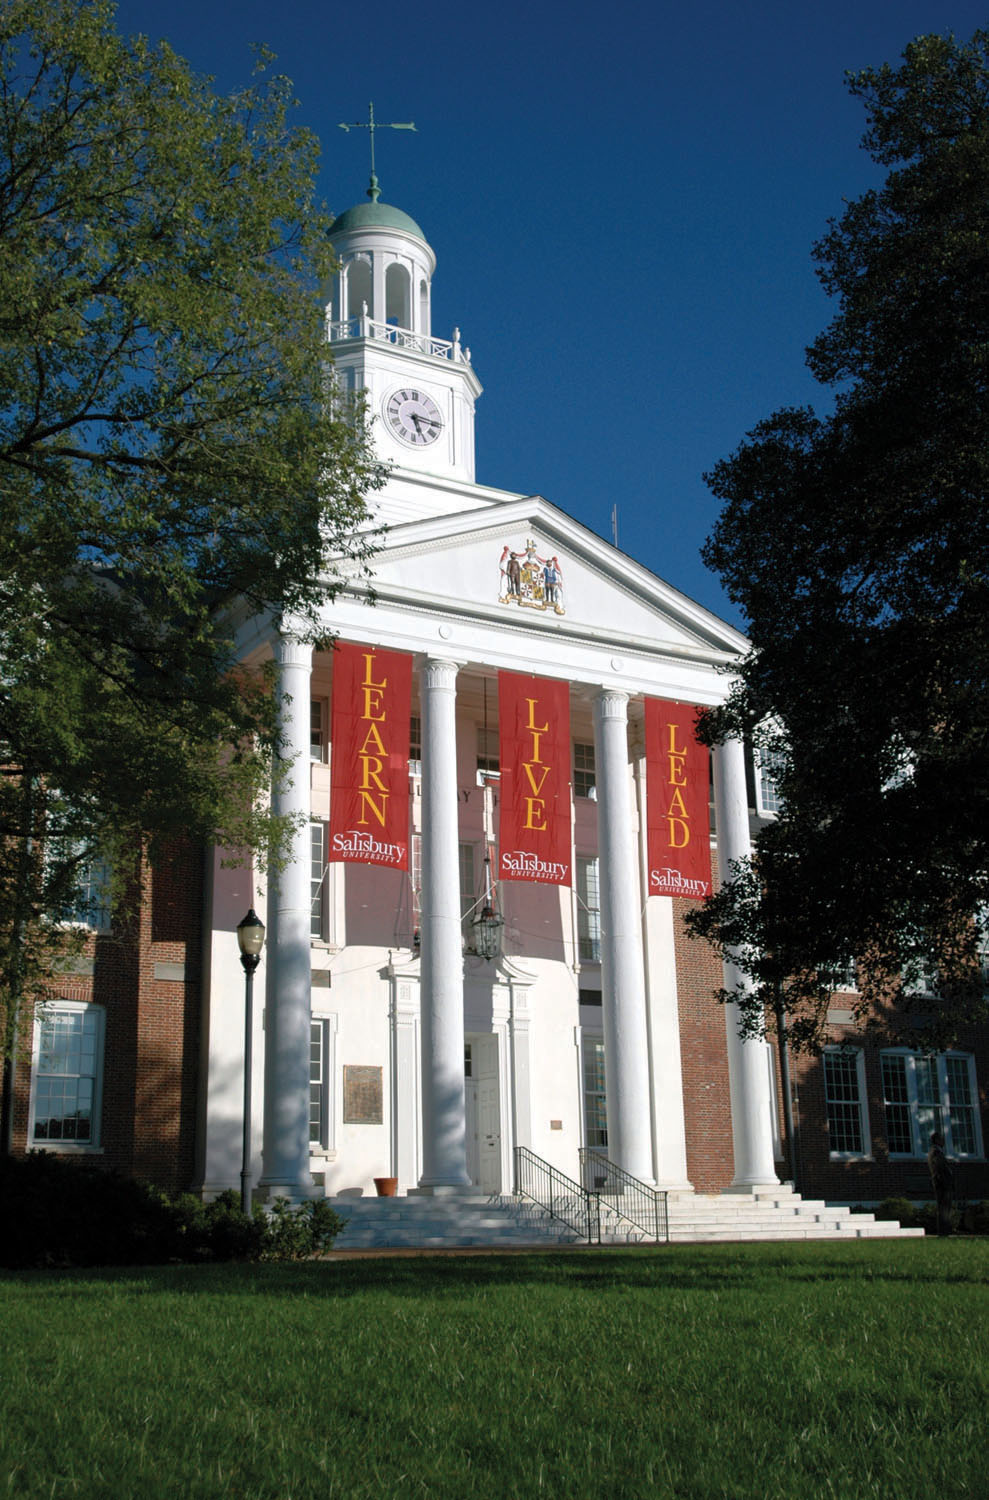 u0026 39 u s  news u0026 39  again ranks salisbury among  u0026 39 best colleges u0026 39